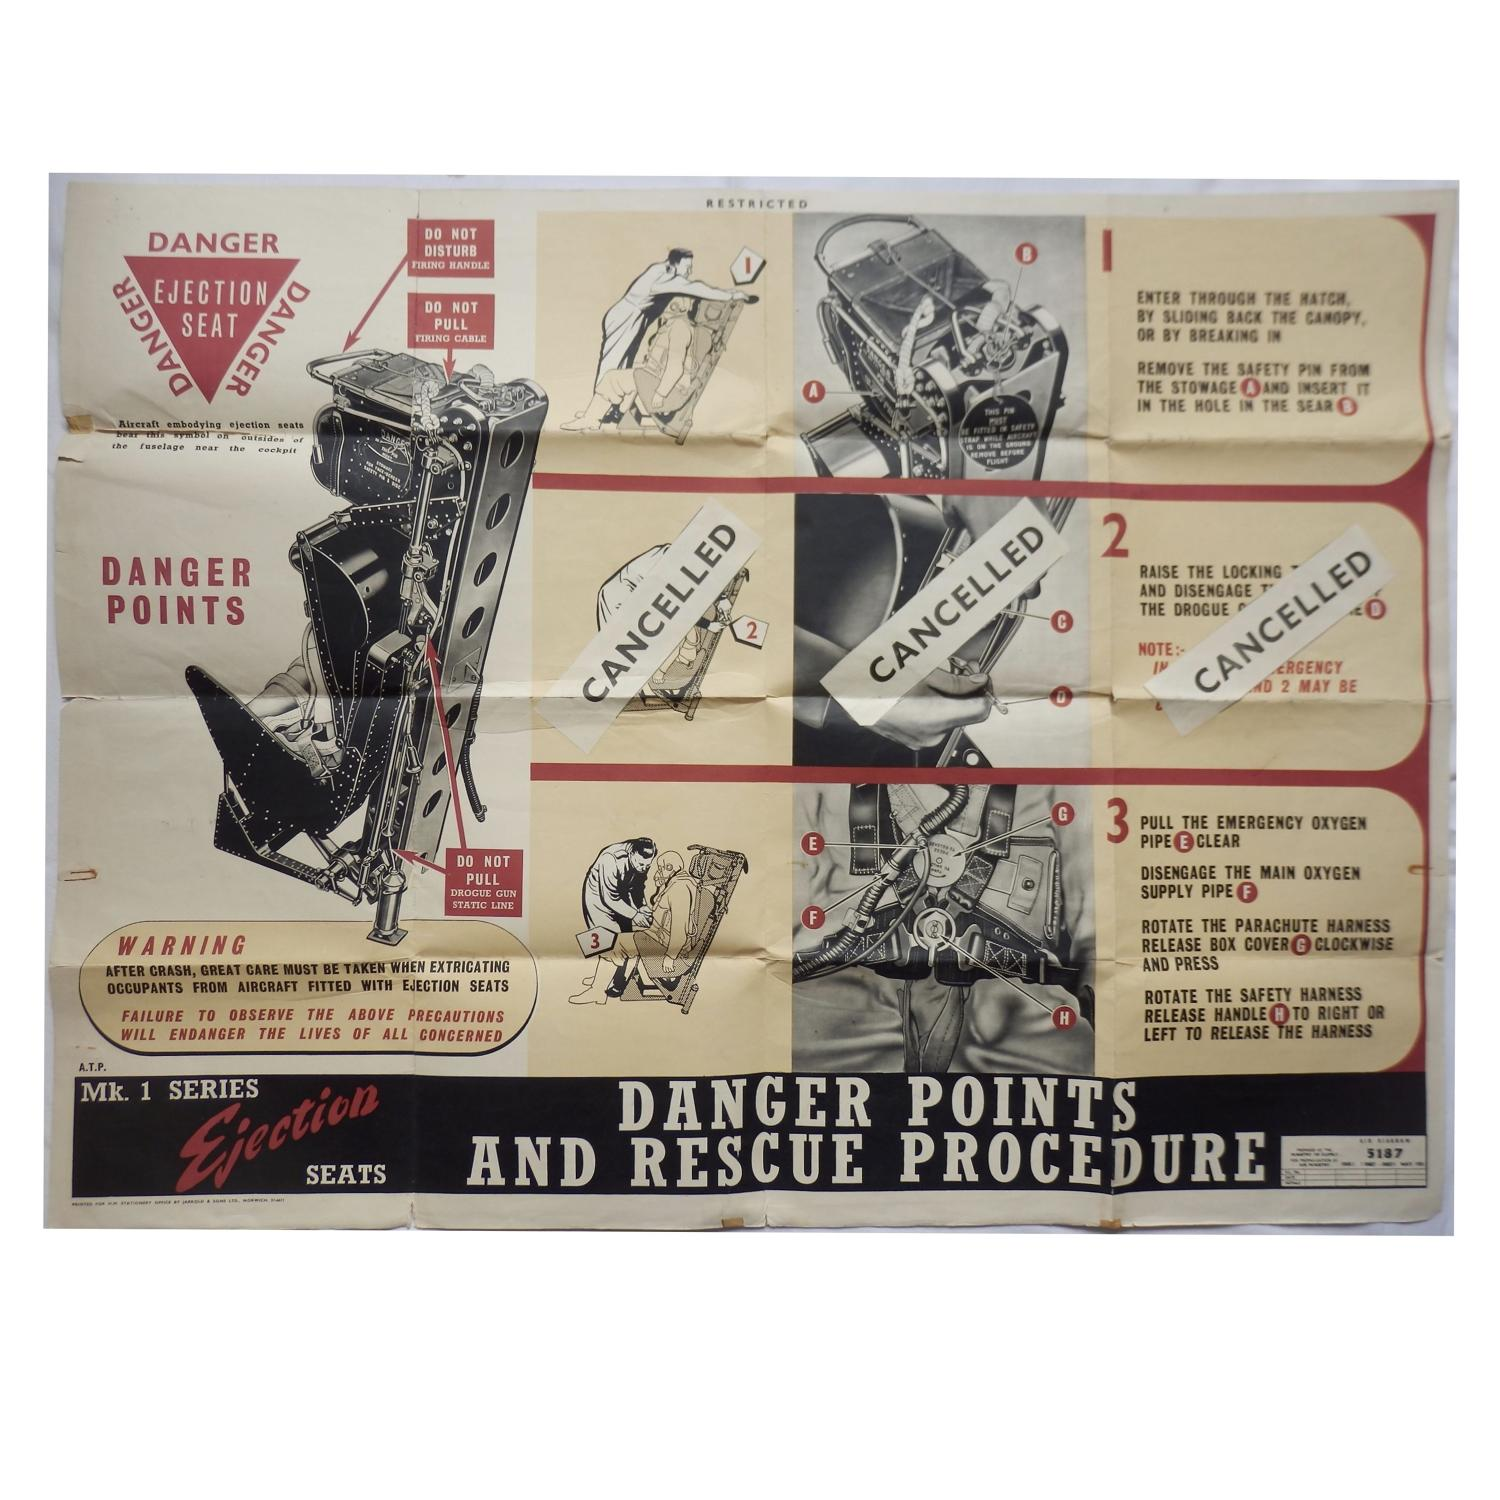 air diagram - mk 1 ejector seat safety poster c 1951